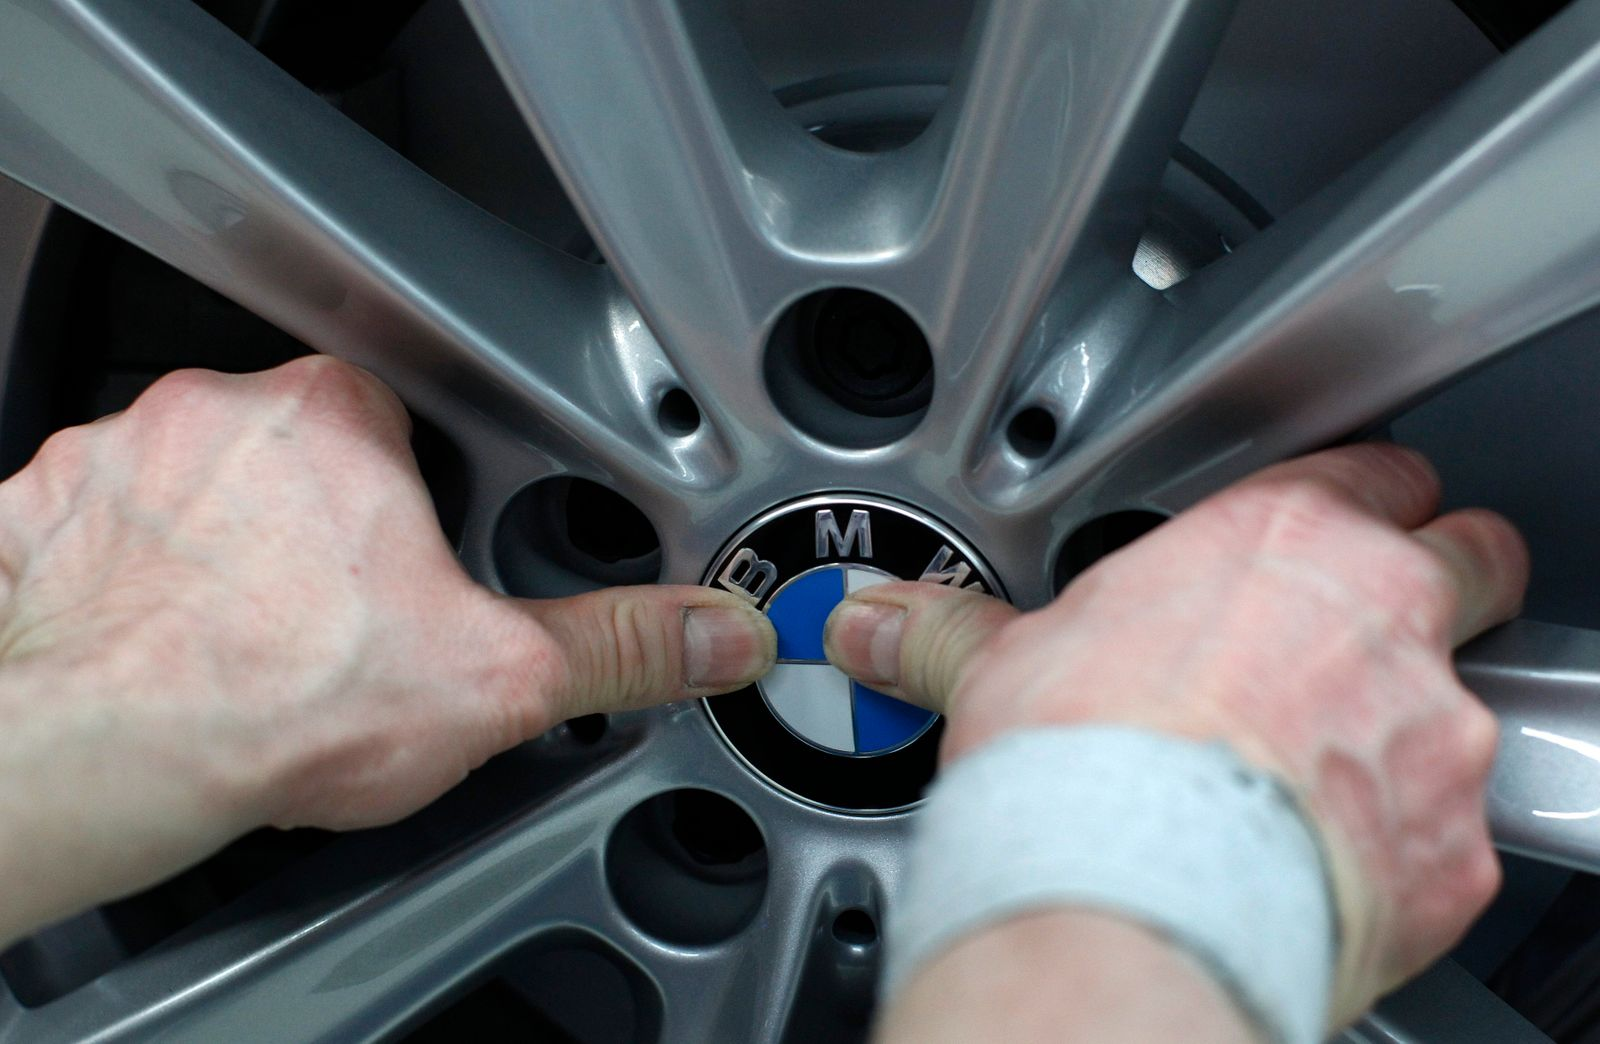 Employee places company logo on BMW wheel rim at production line of German car manufacturer's plant in Dingolfing